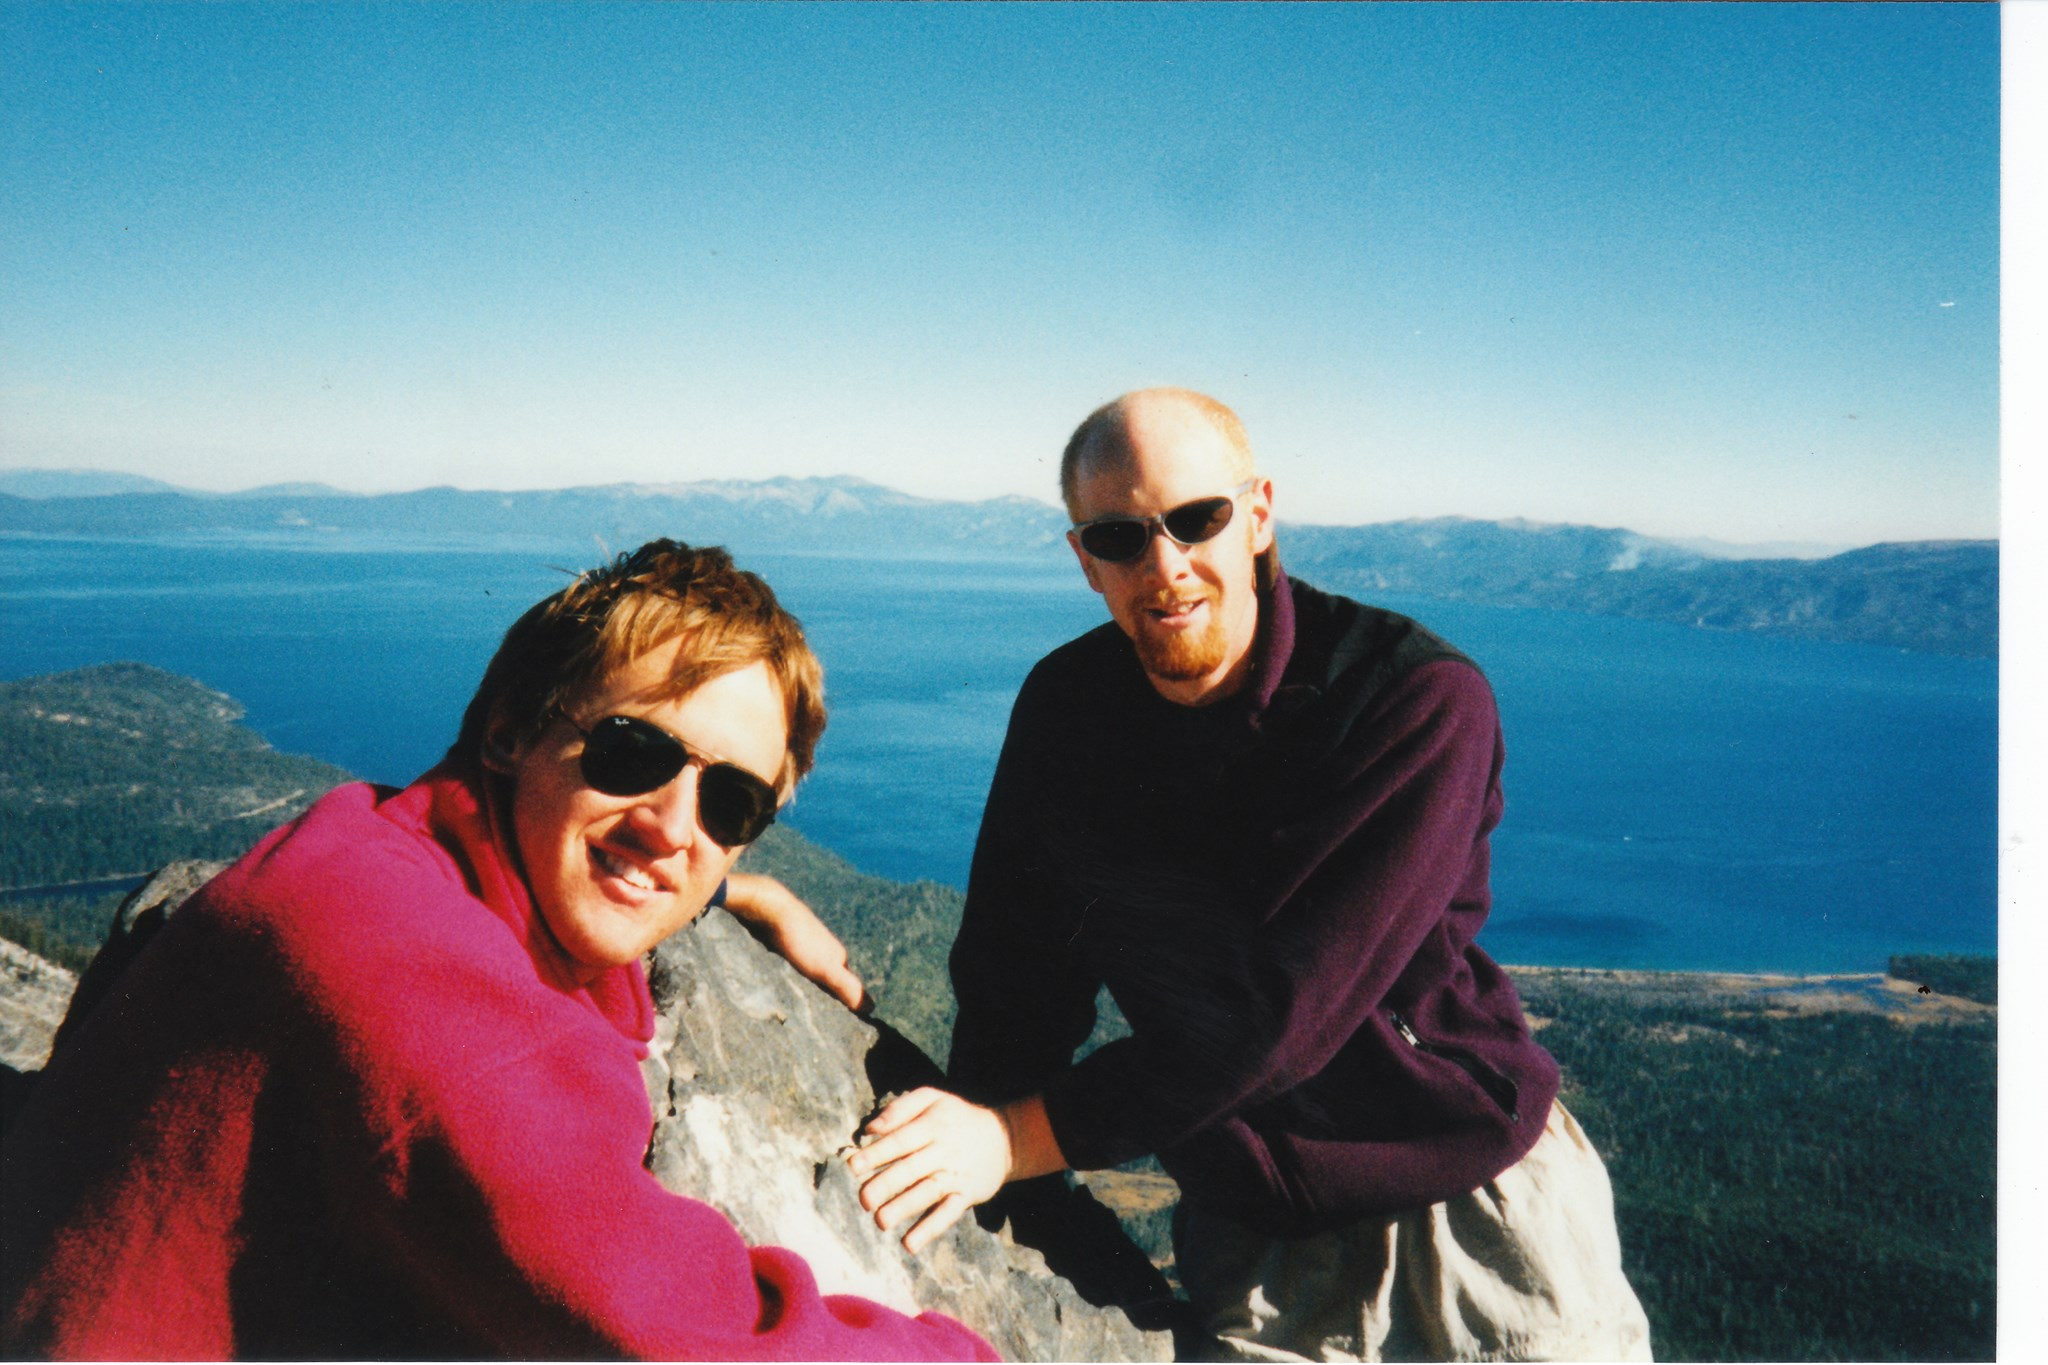 On top of Mt Tallac, Tahoe 1997